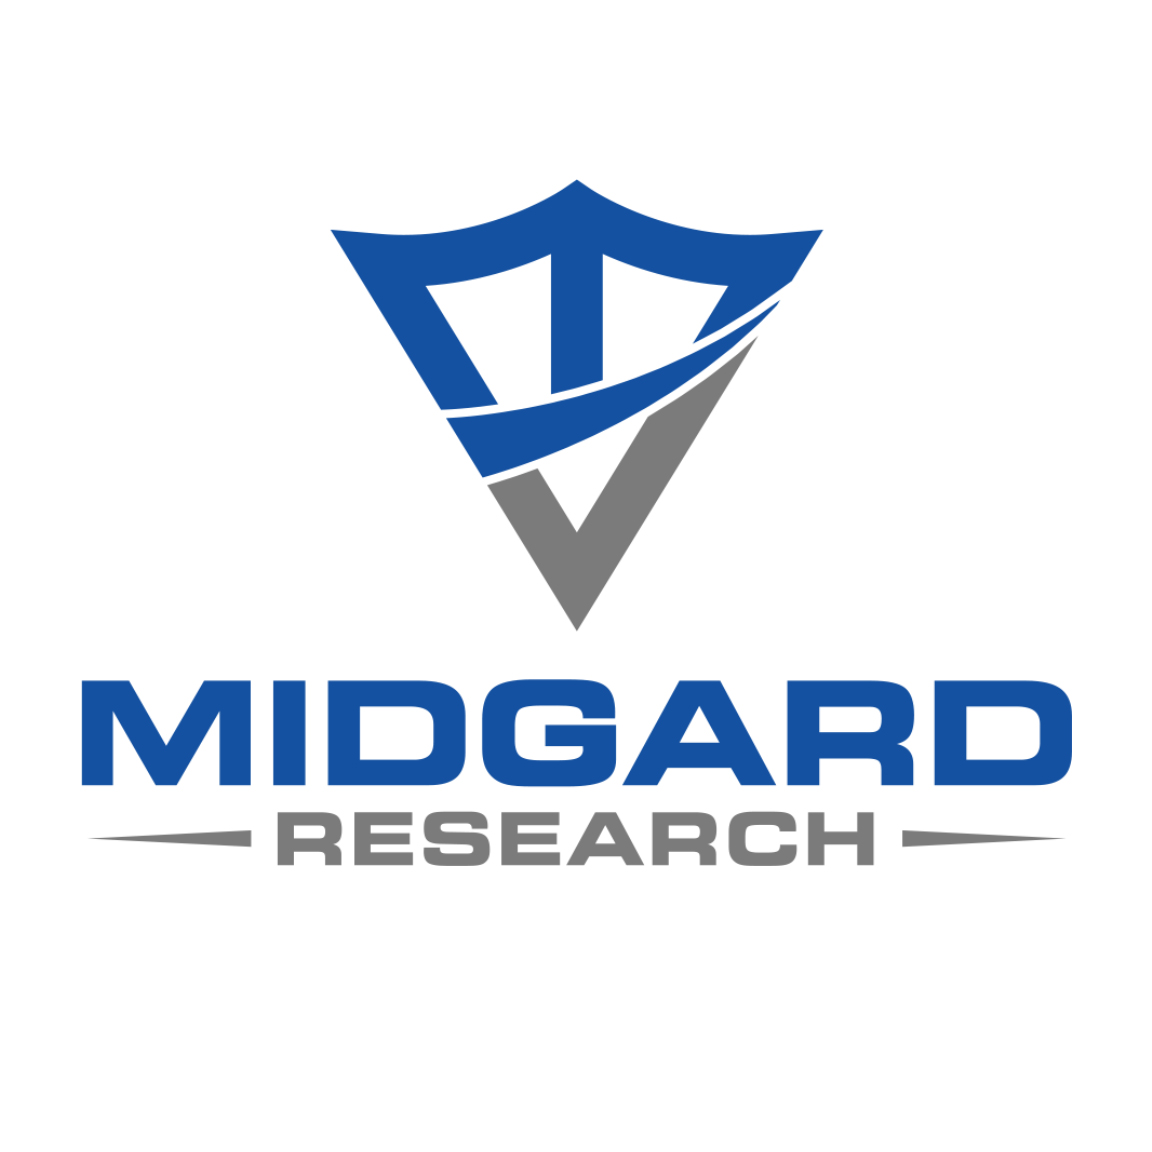 Midgard Research